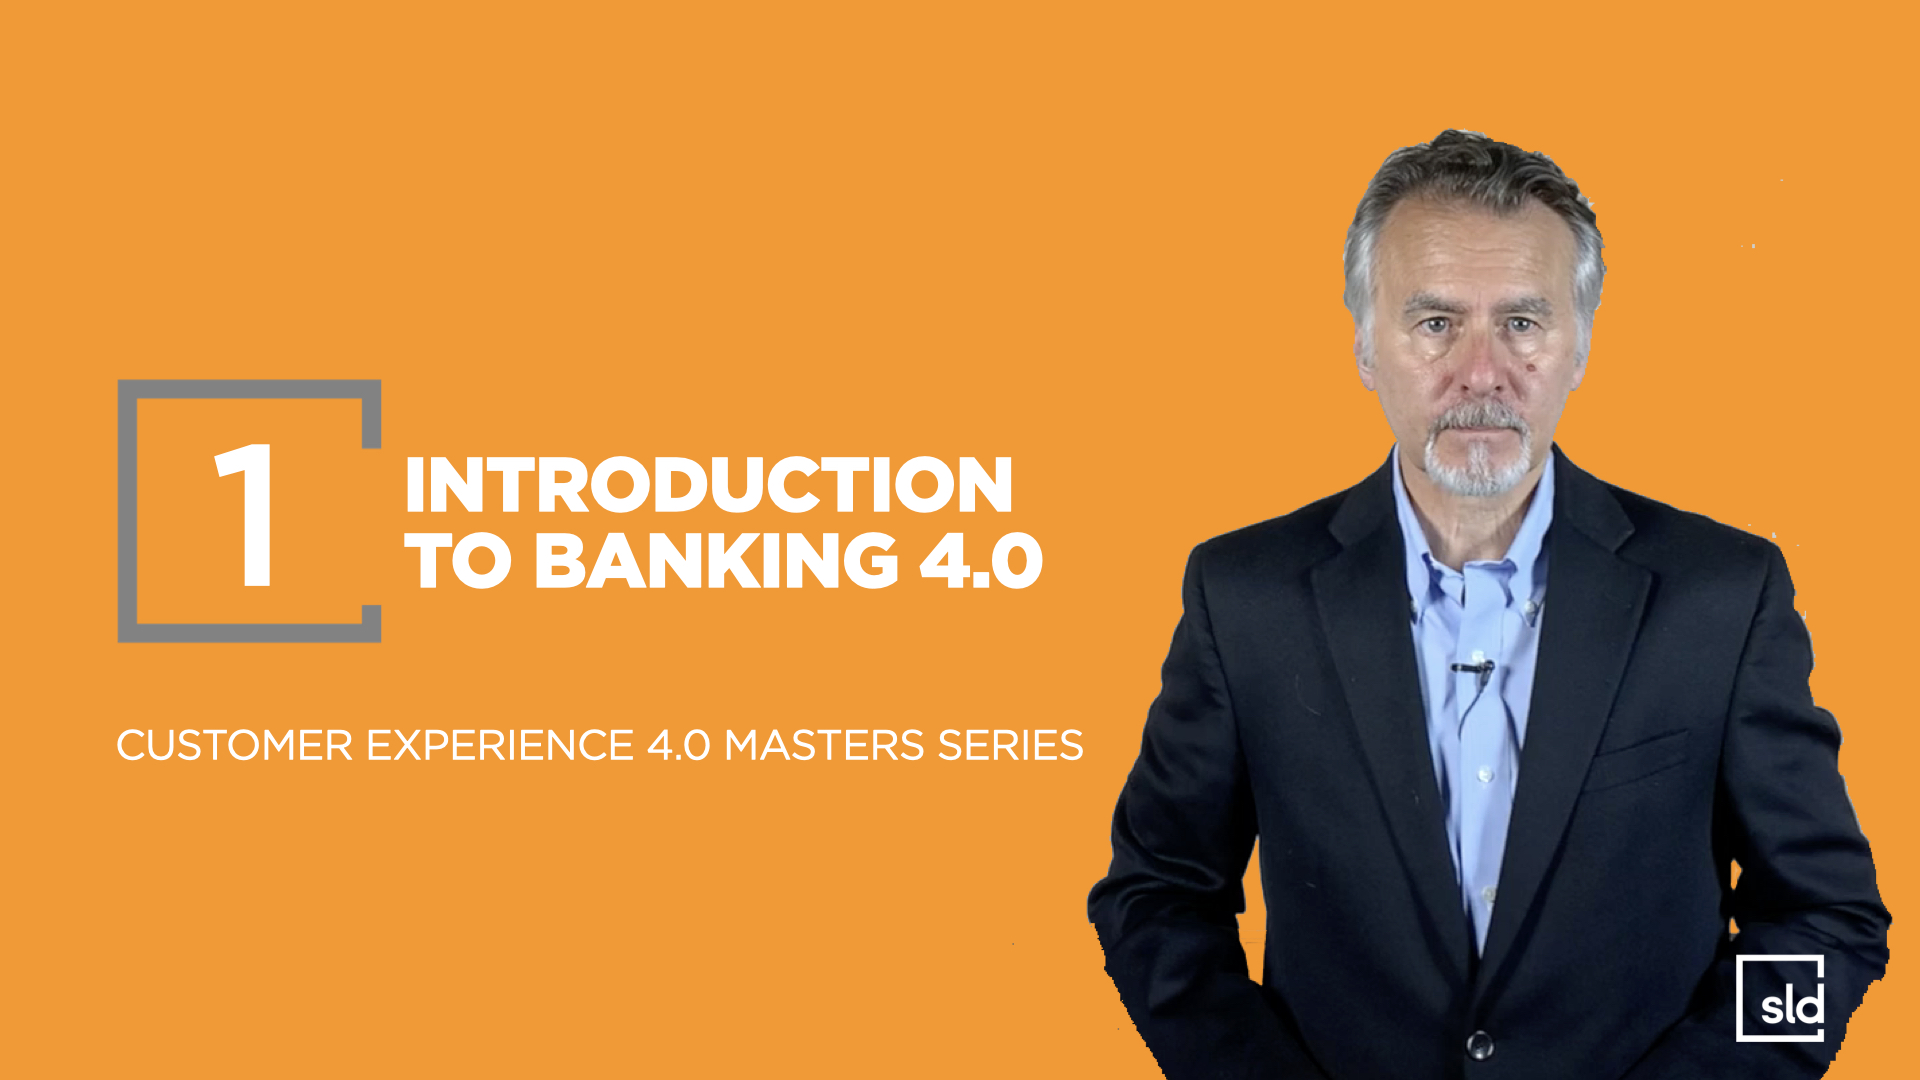 1. Introduction to Banking 4.0